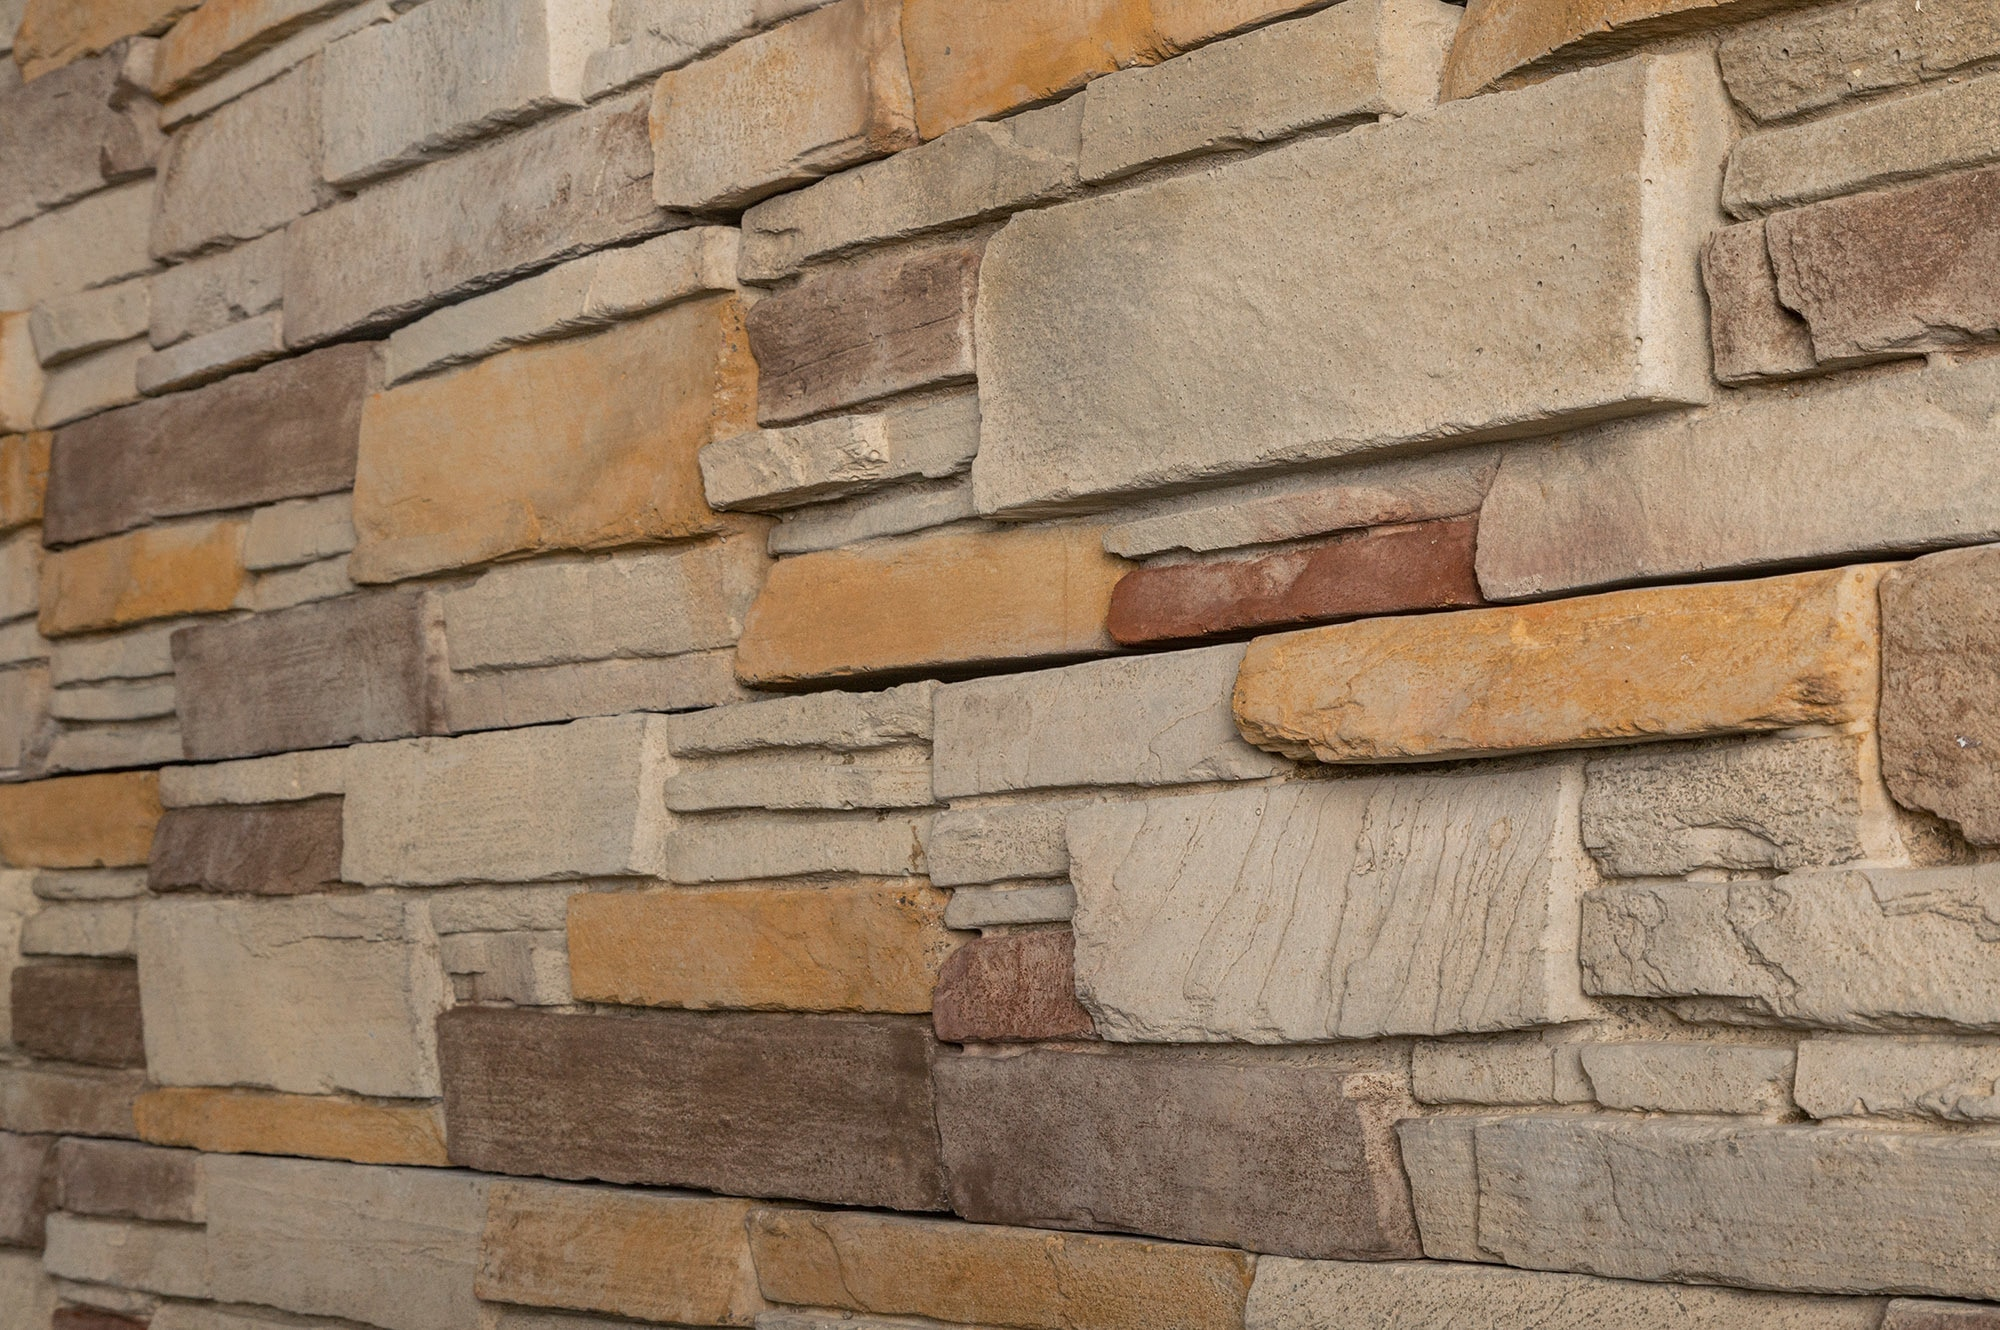 Black bear pallets manufactured stone stack n tack for Manufactured veneer stone